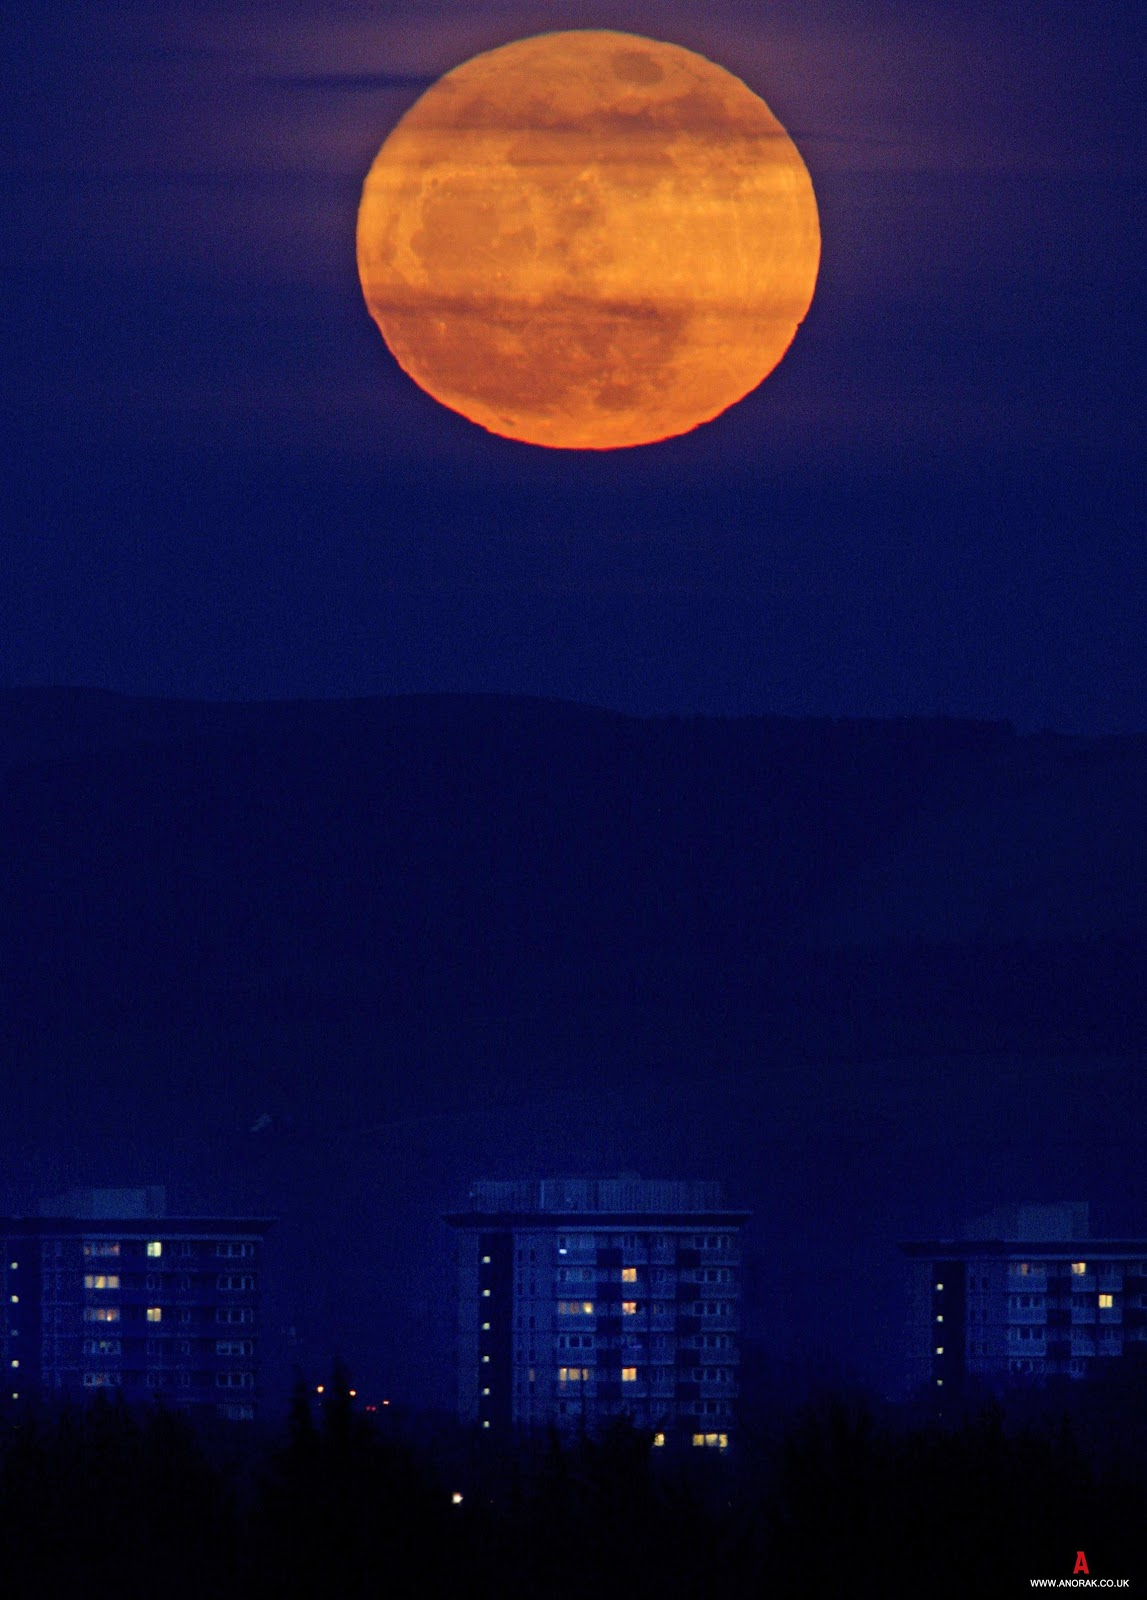 Moon To Moon Moroccan Home: Supermoon, Spectacular Images, Inspiration For May 5, 2012